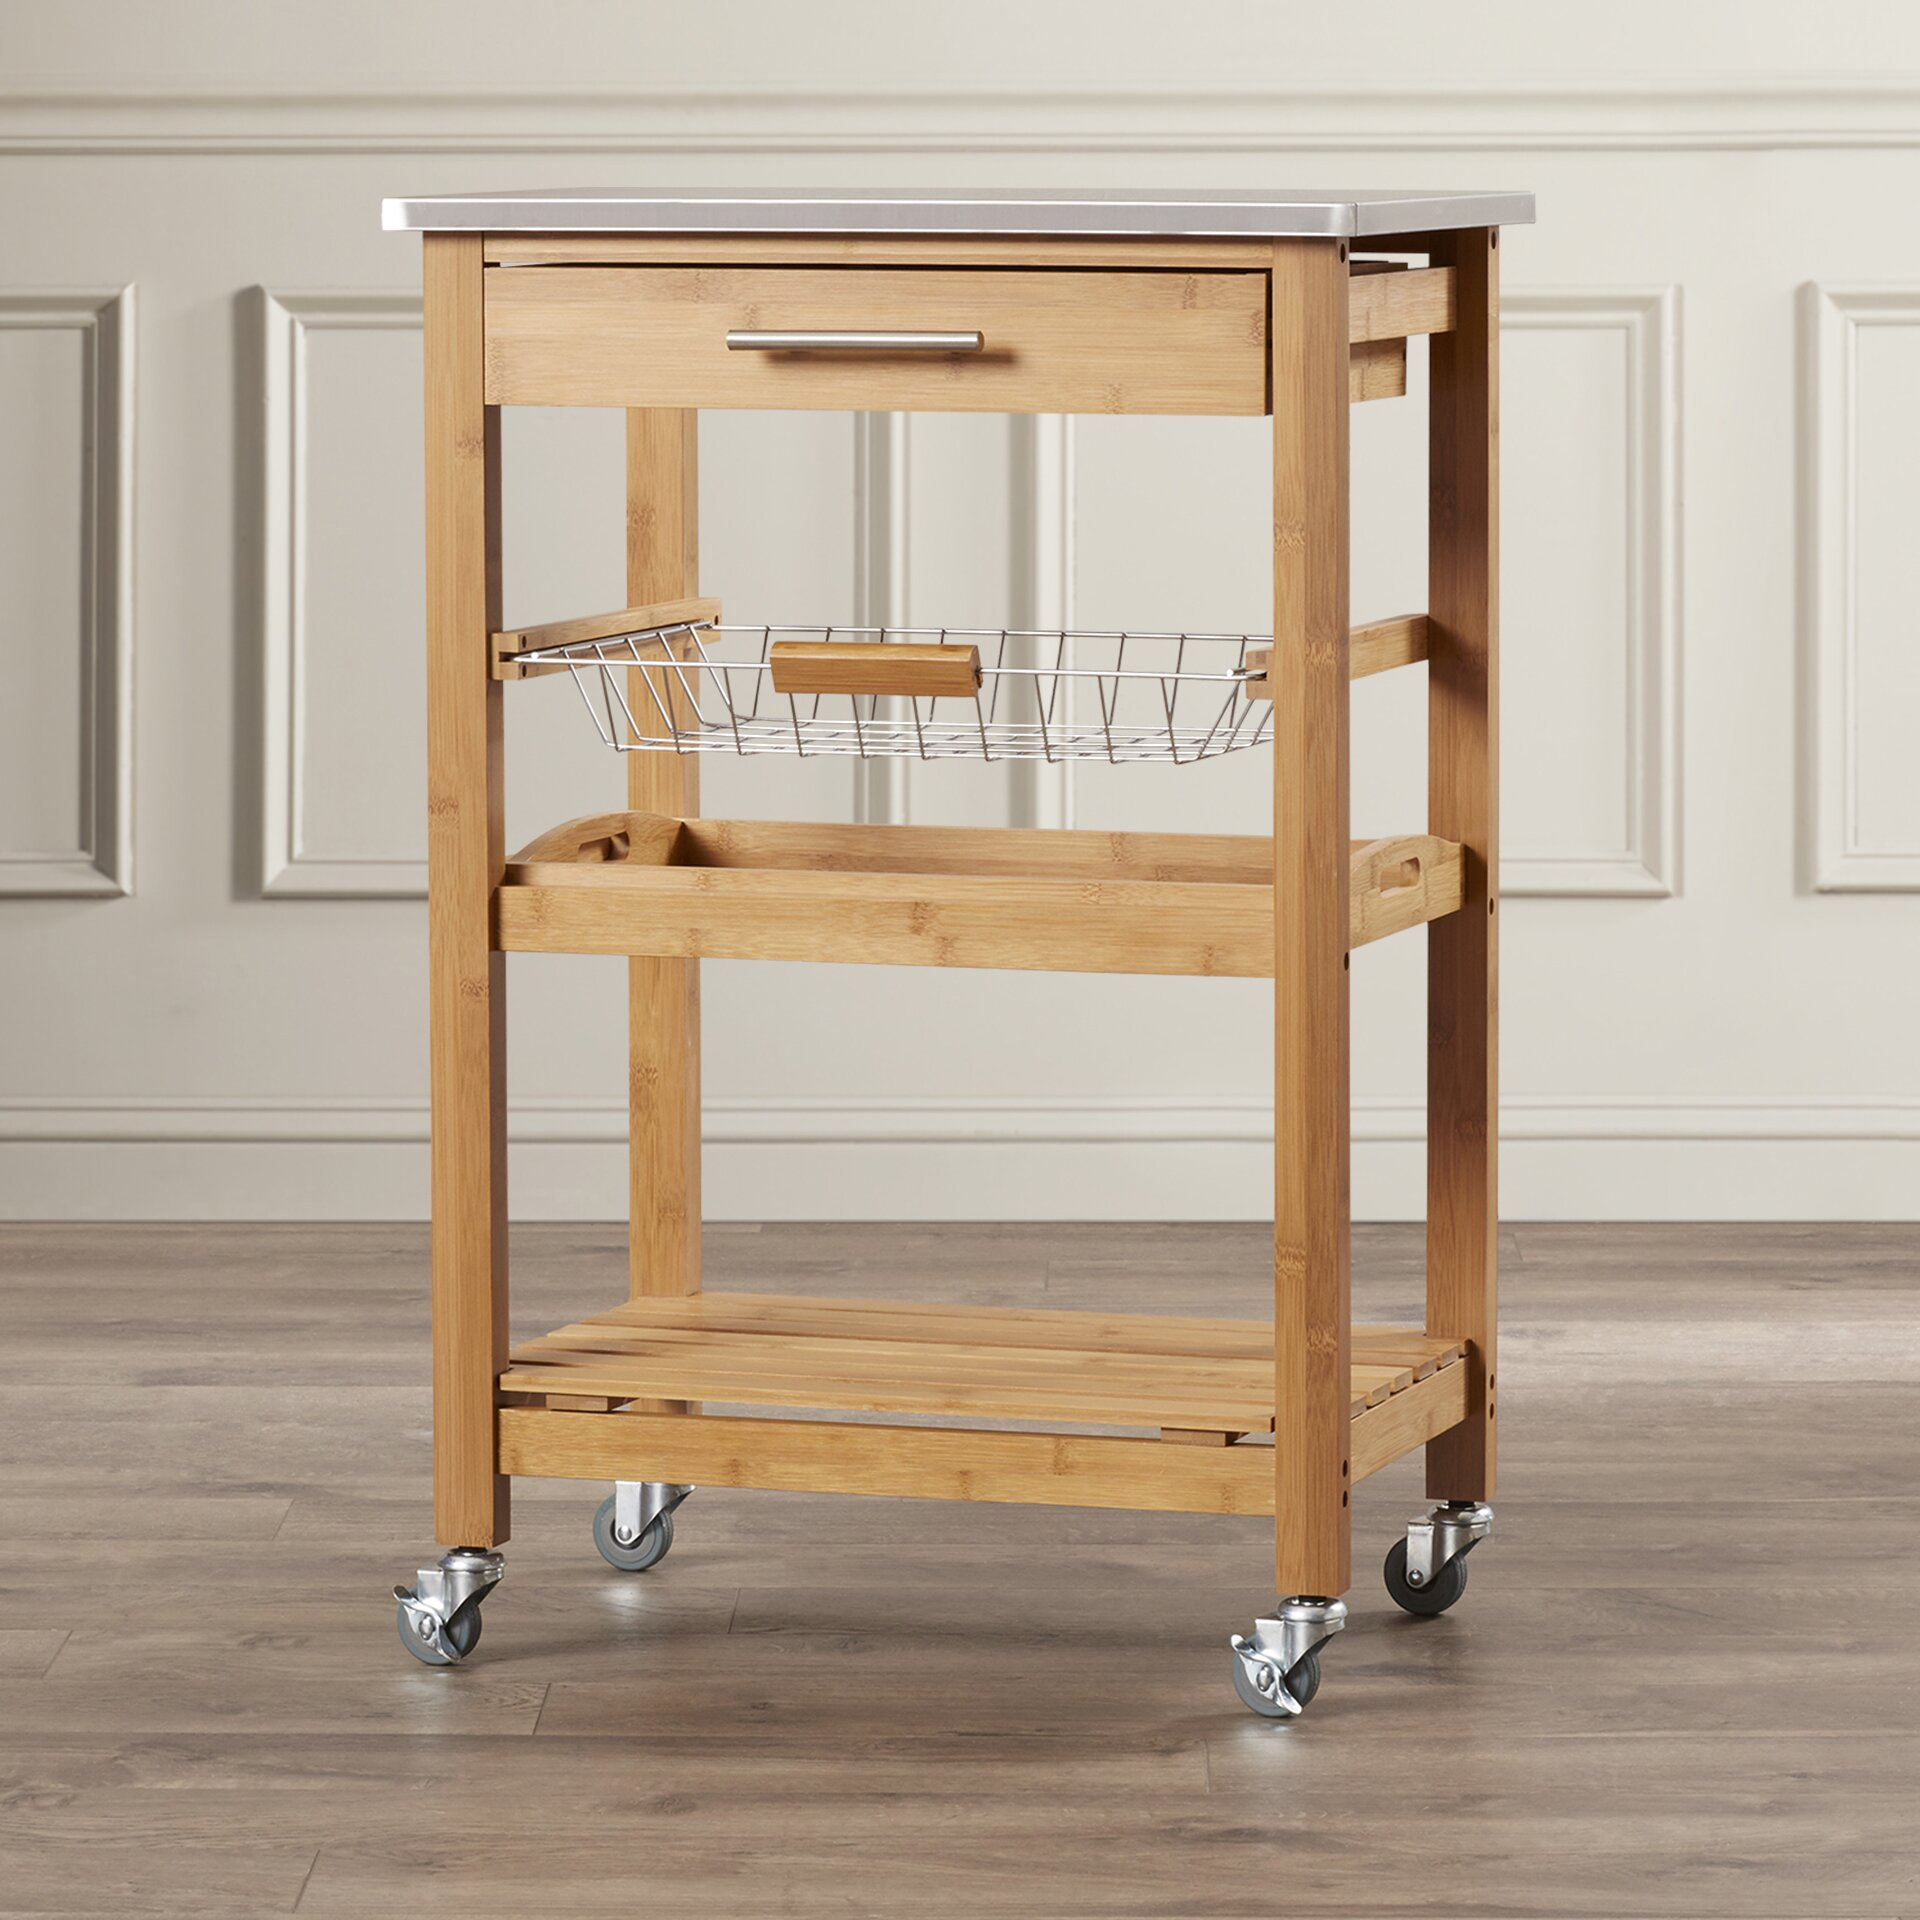 The Arbors At California Oaks: Charlton Home Arbor Oaks Kitchen Cart With Stainless Steel